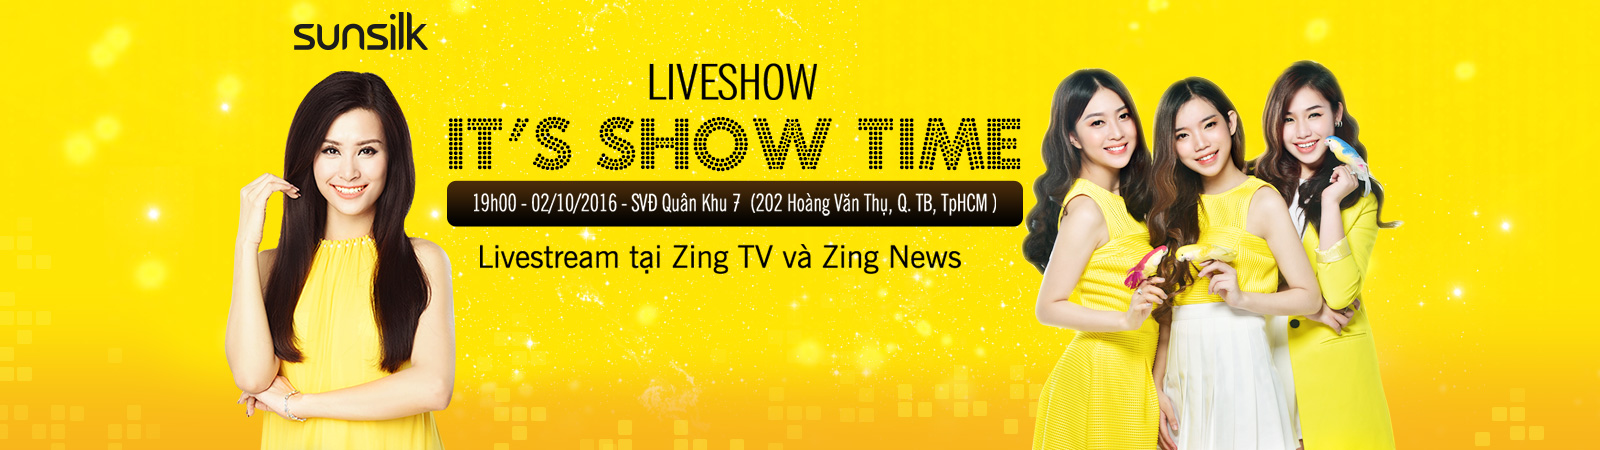 Sunsilk & Đông Nhi - It's Show Time